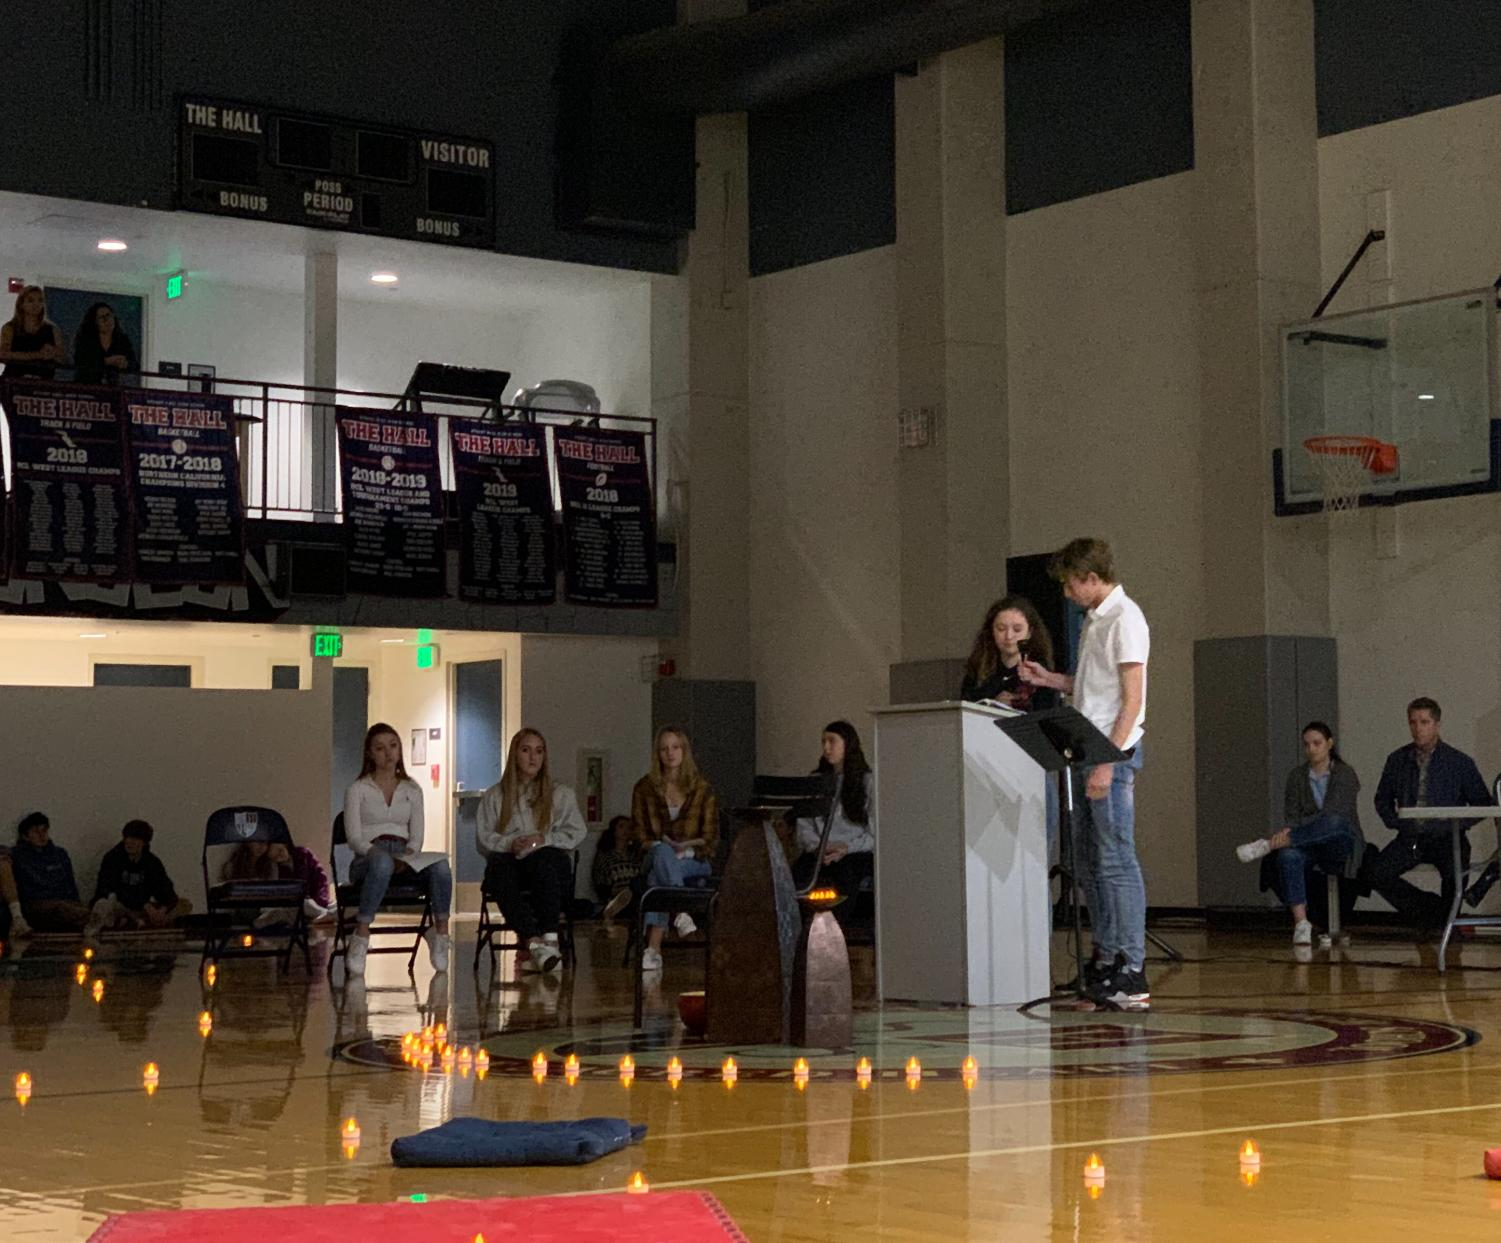 Sophomores Mackenna Moslander and Will Burns speak about their service at the all school chapel held in the gym. The focus was honoring the feast of Sacred Heart sister Philippine Duchesne.